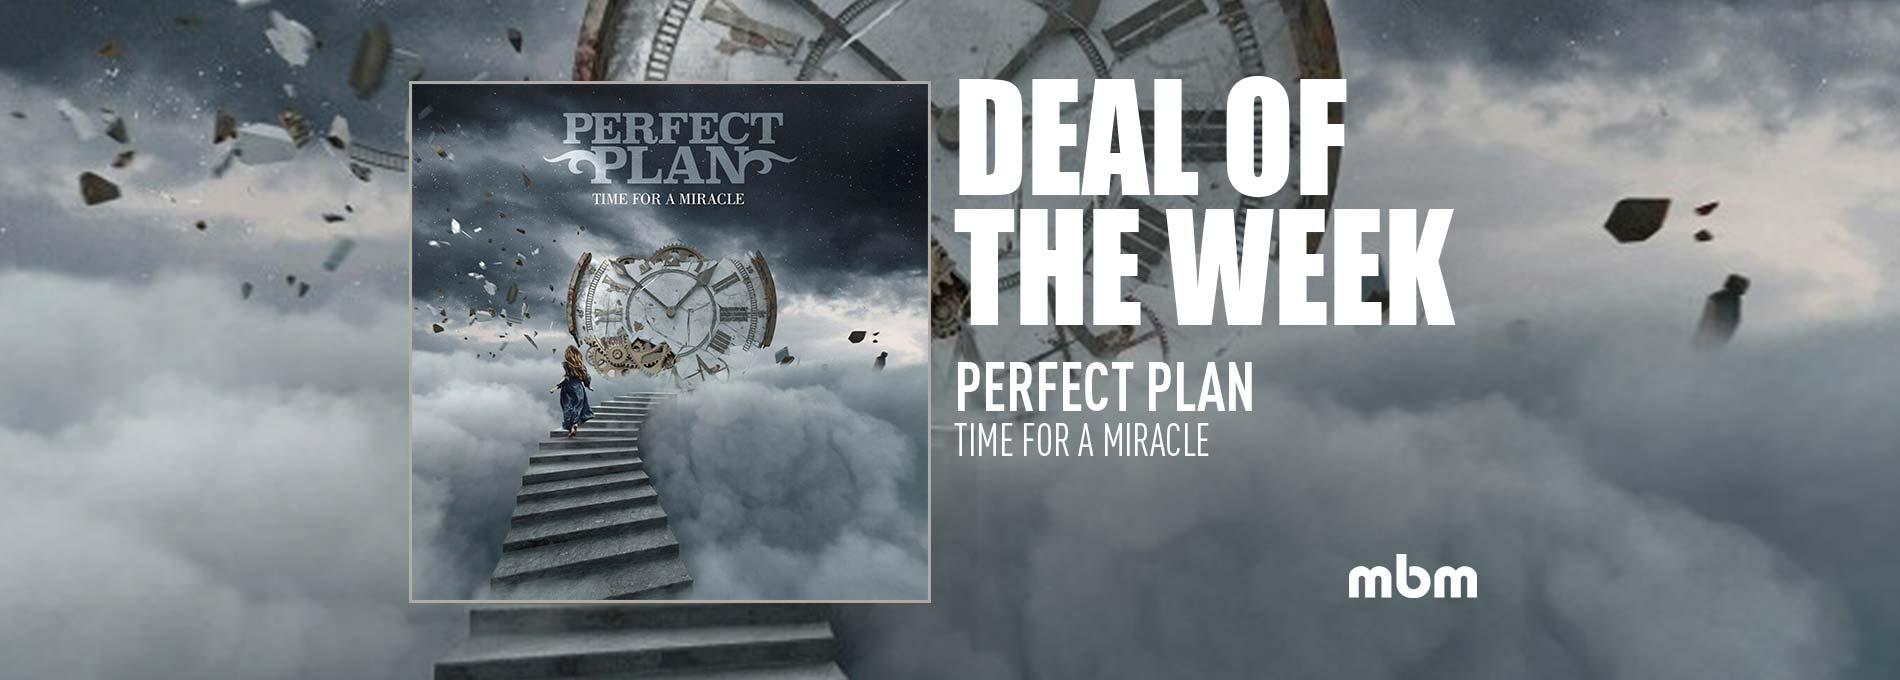 PERFECT PLAN - Time For A Miracle